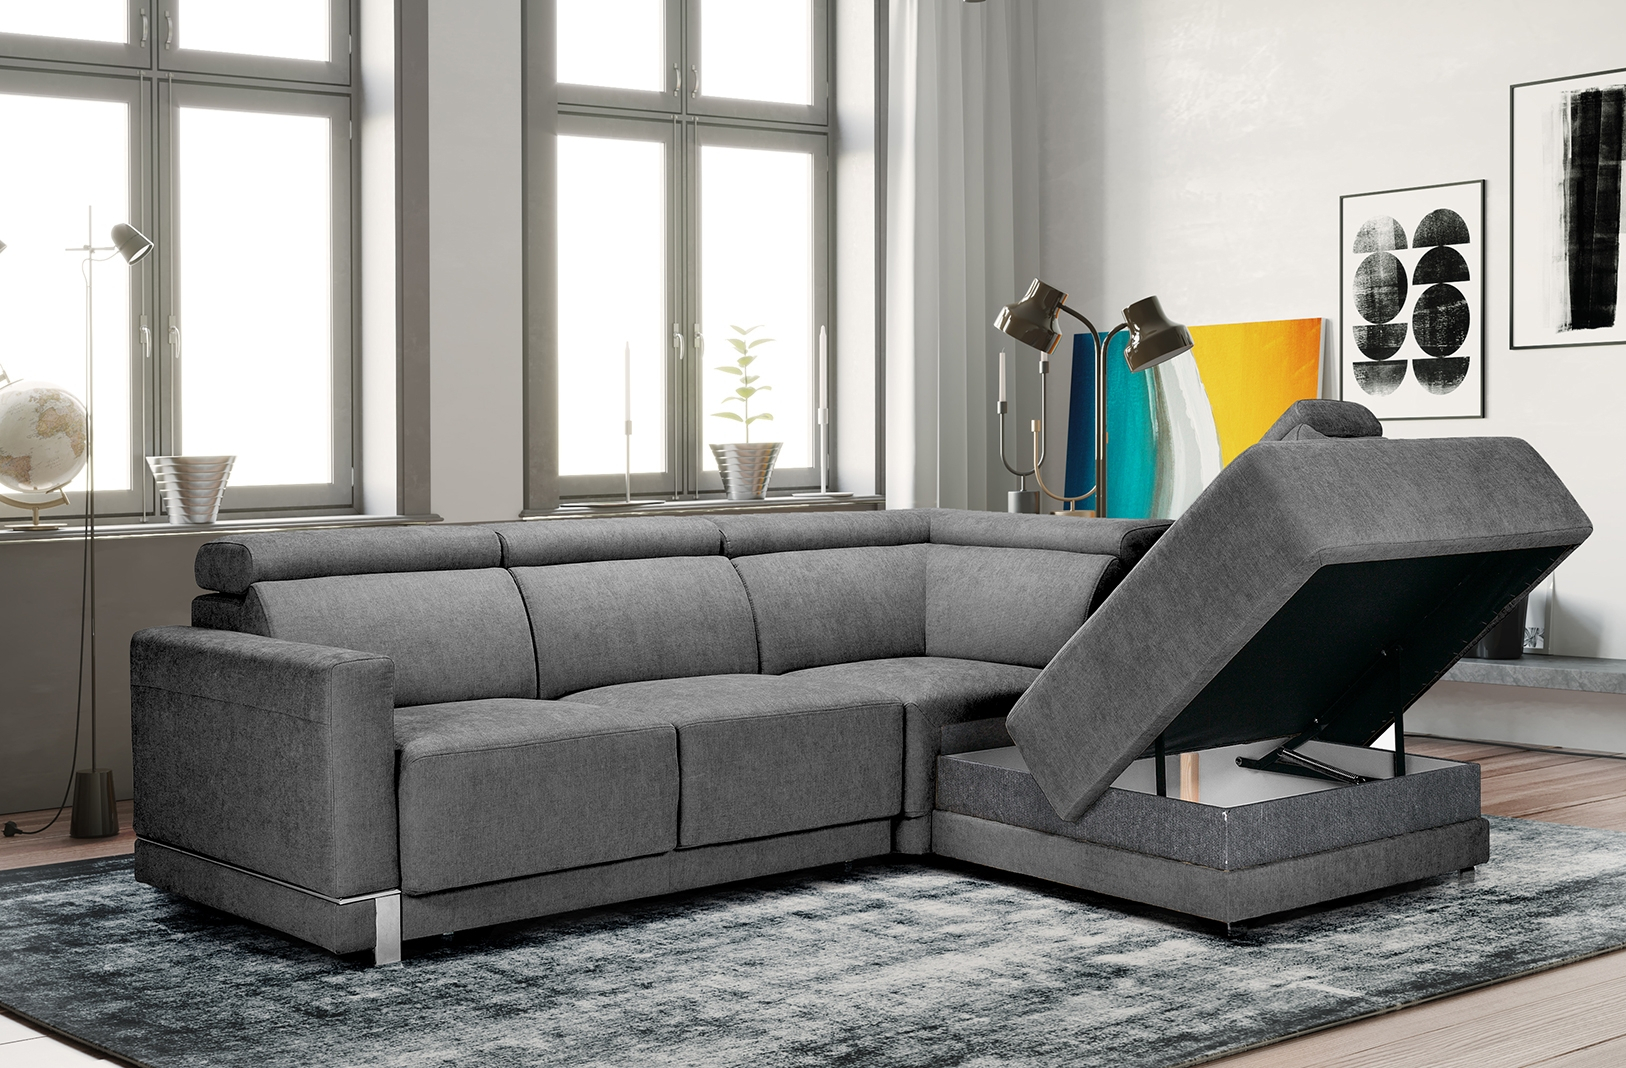 Marburg Sectional Sofa – Nordholtz Furniture With Sectional Sofas (View 1 of 15)